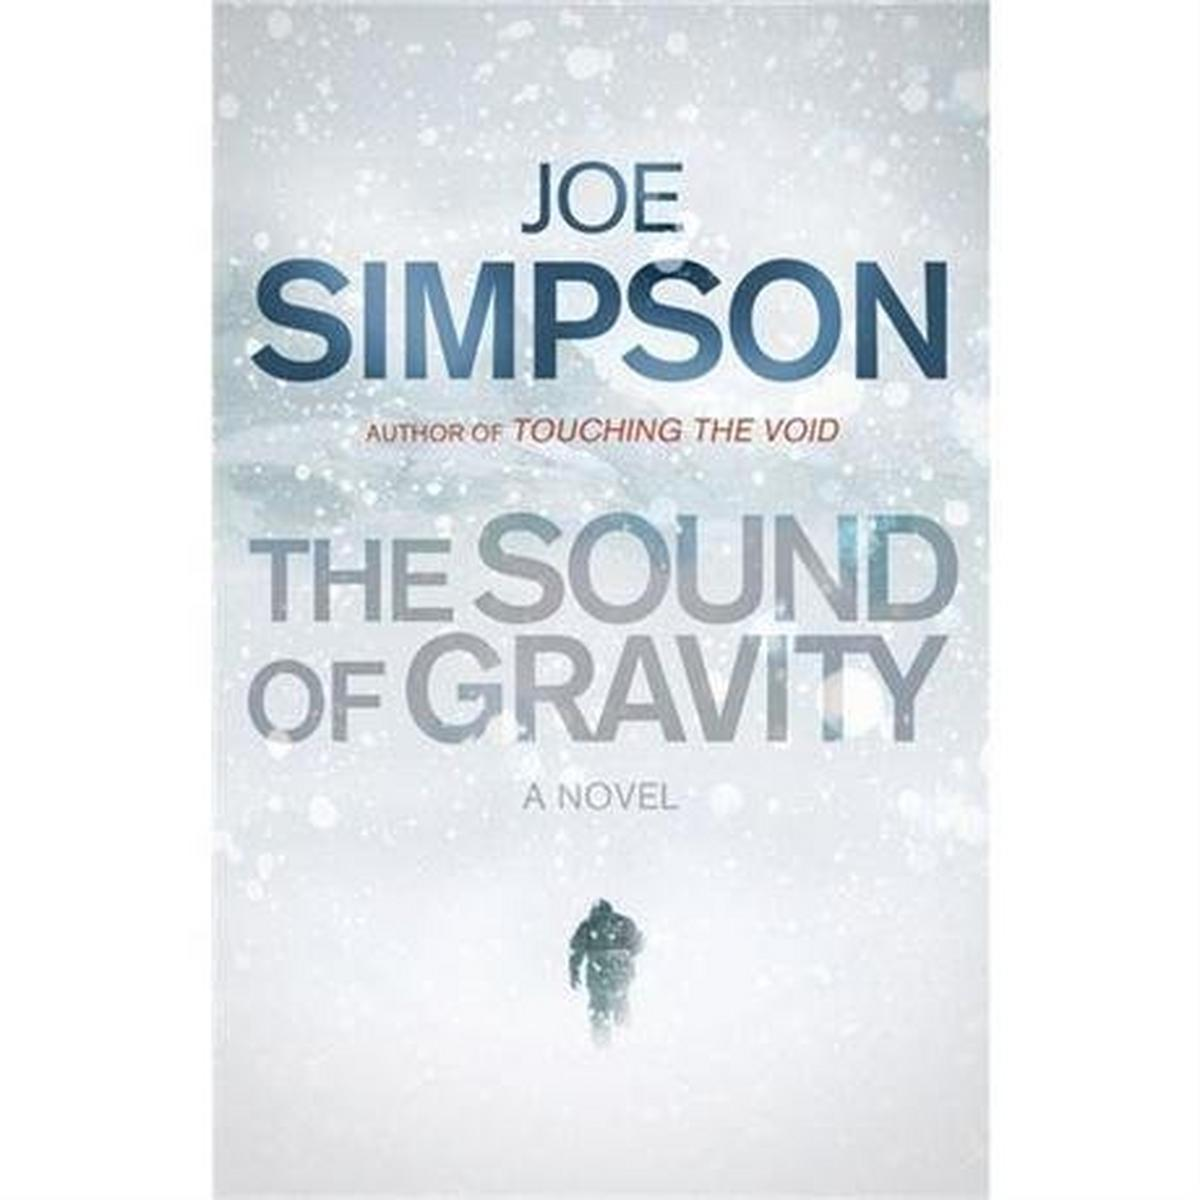 Miscellaneous The Sound of Gravity by Joe Simpson